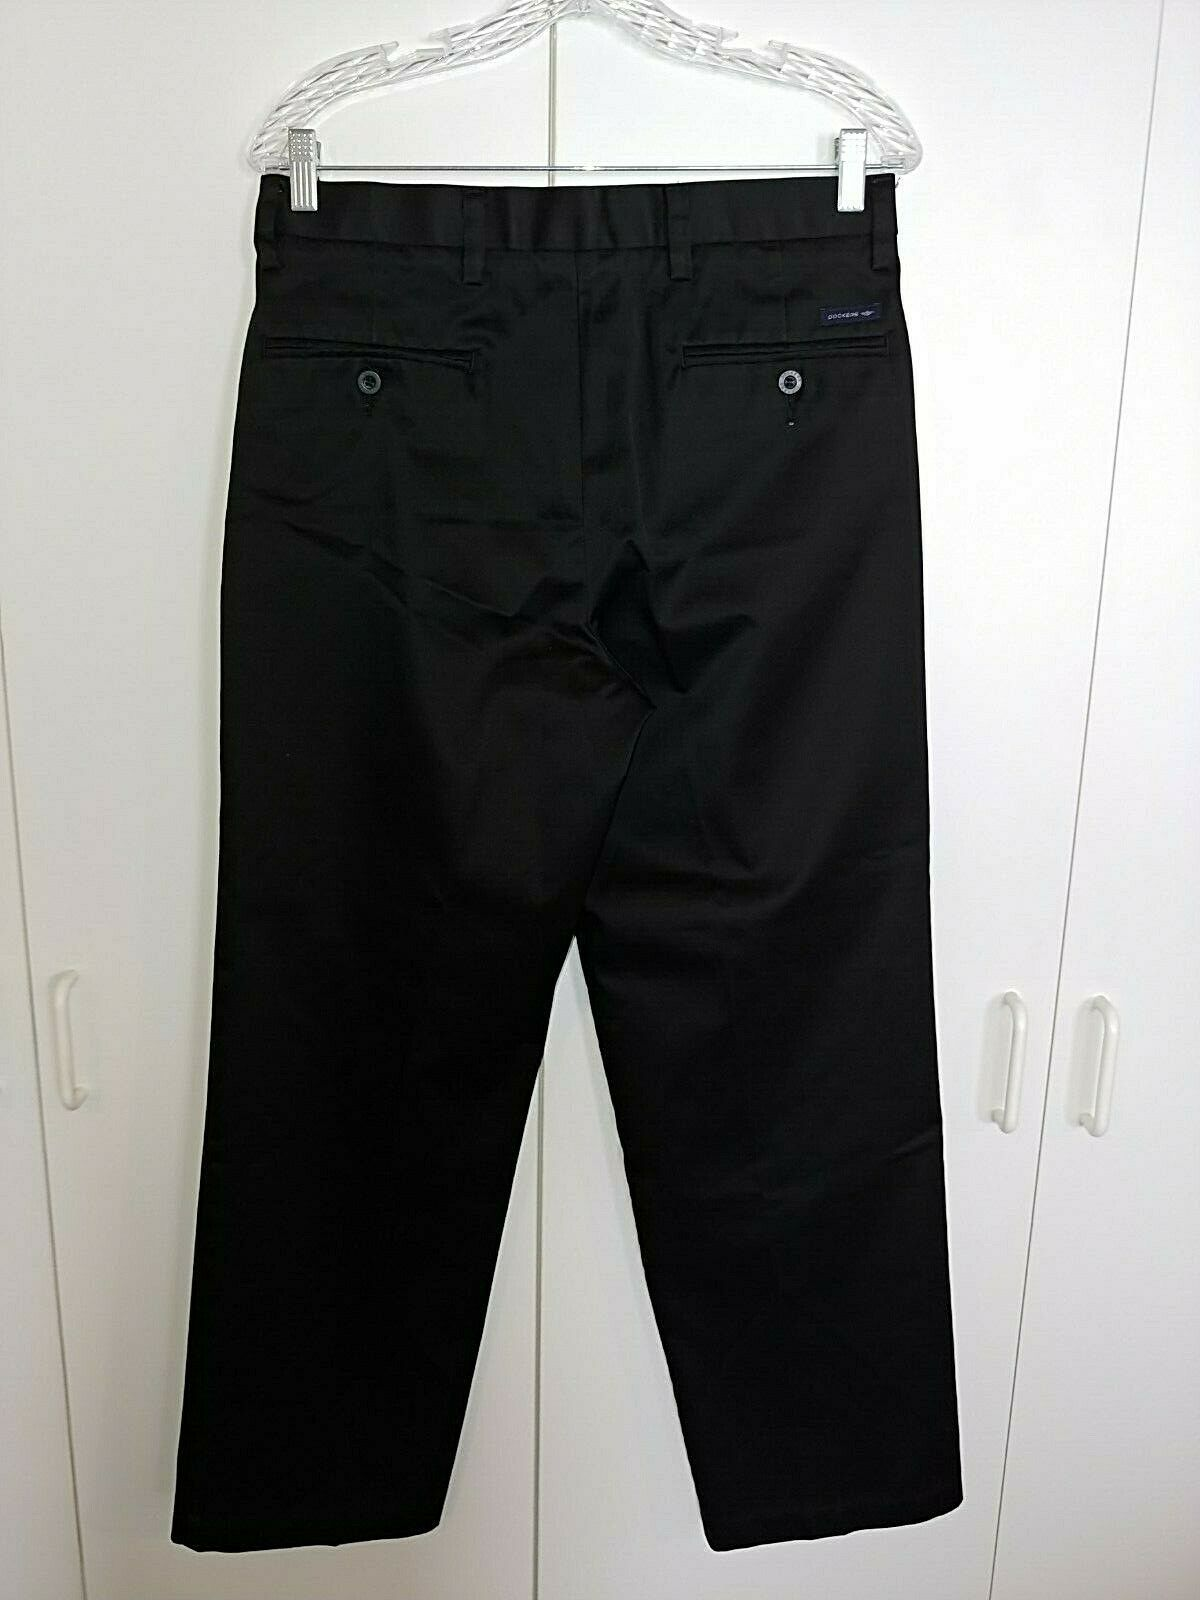 DOCKERS 03 CLASSIC FIT BLACK COTTON MENS PLEATED CASUAL PANTS-31X30-BARELY WORN image 2